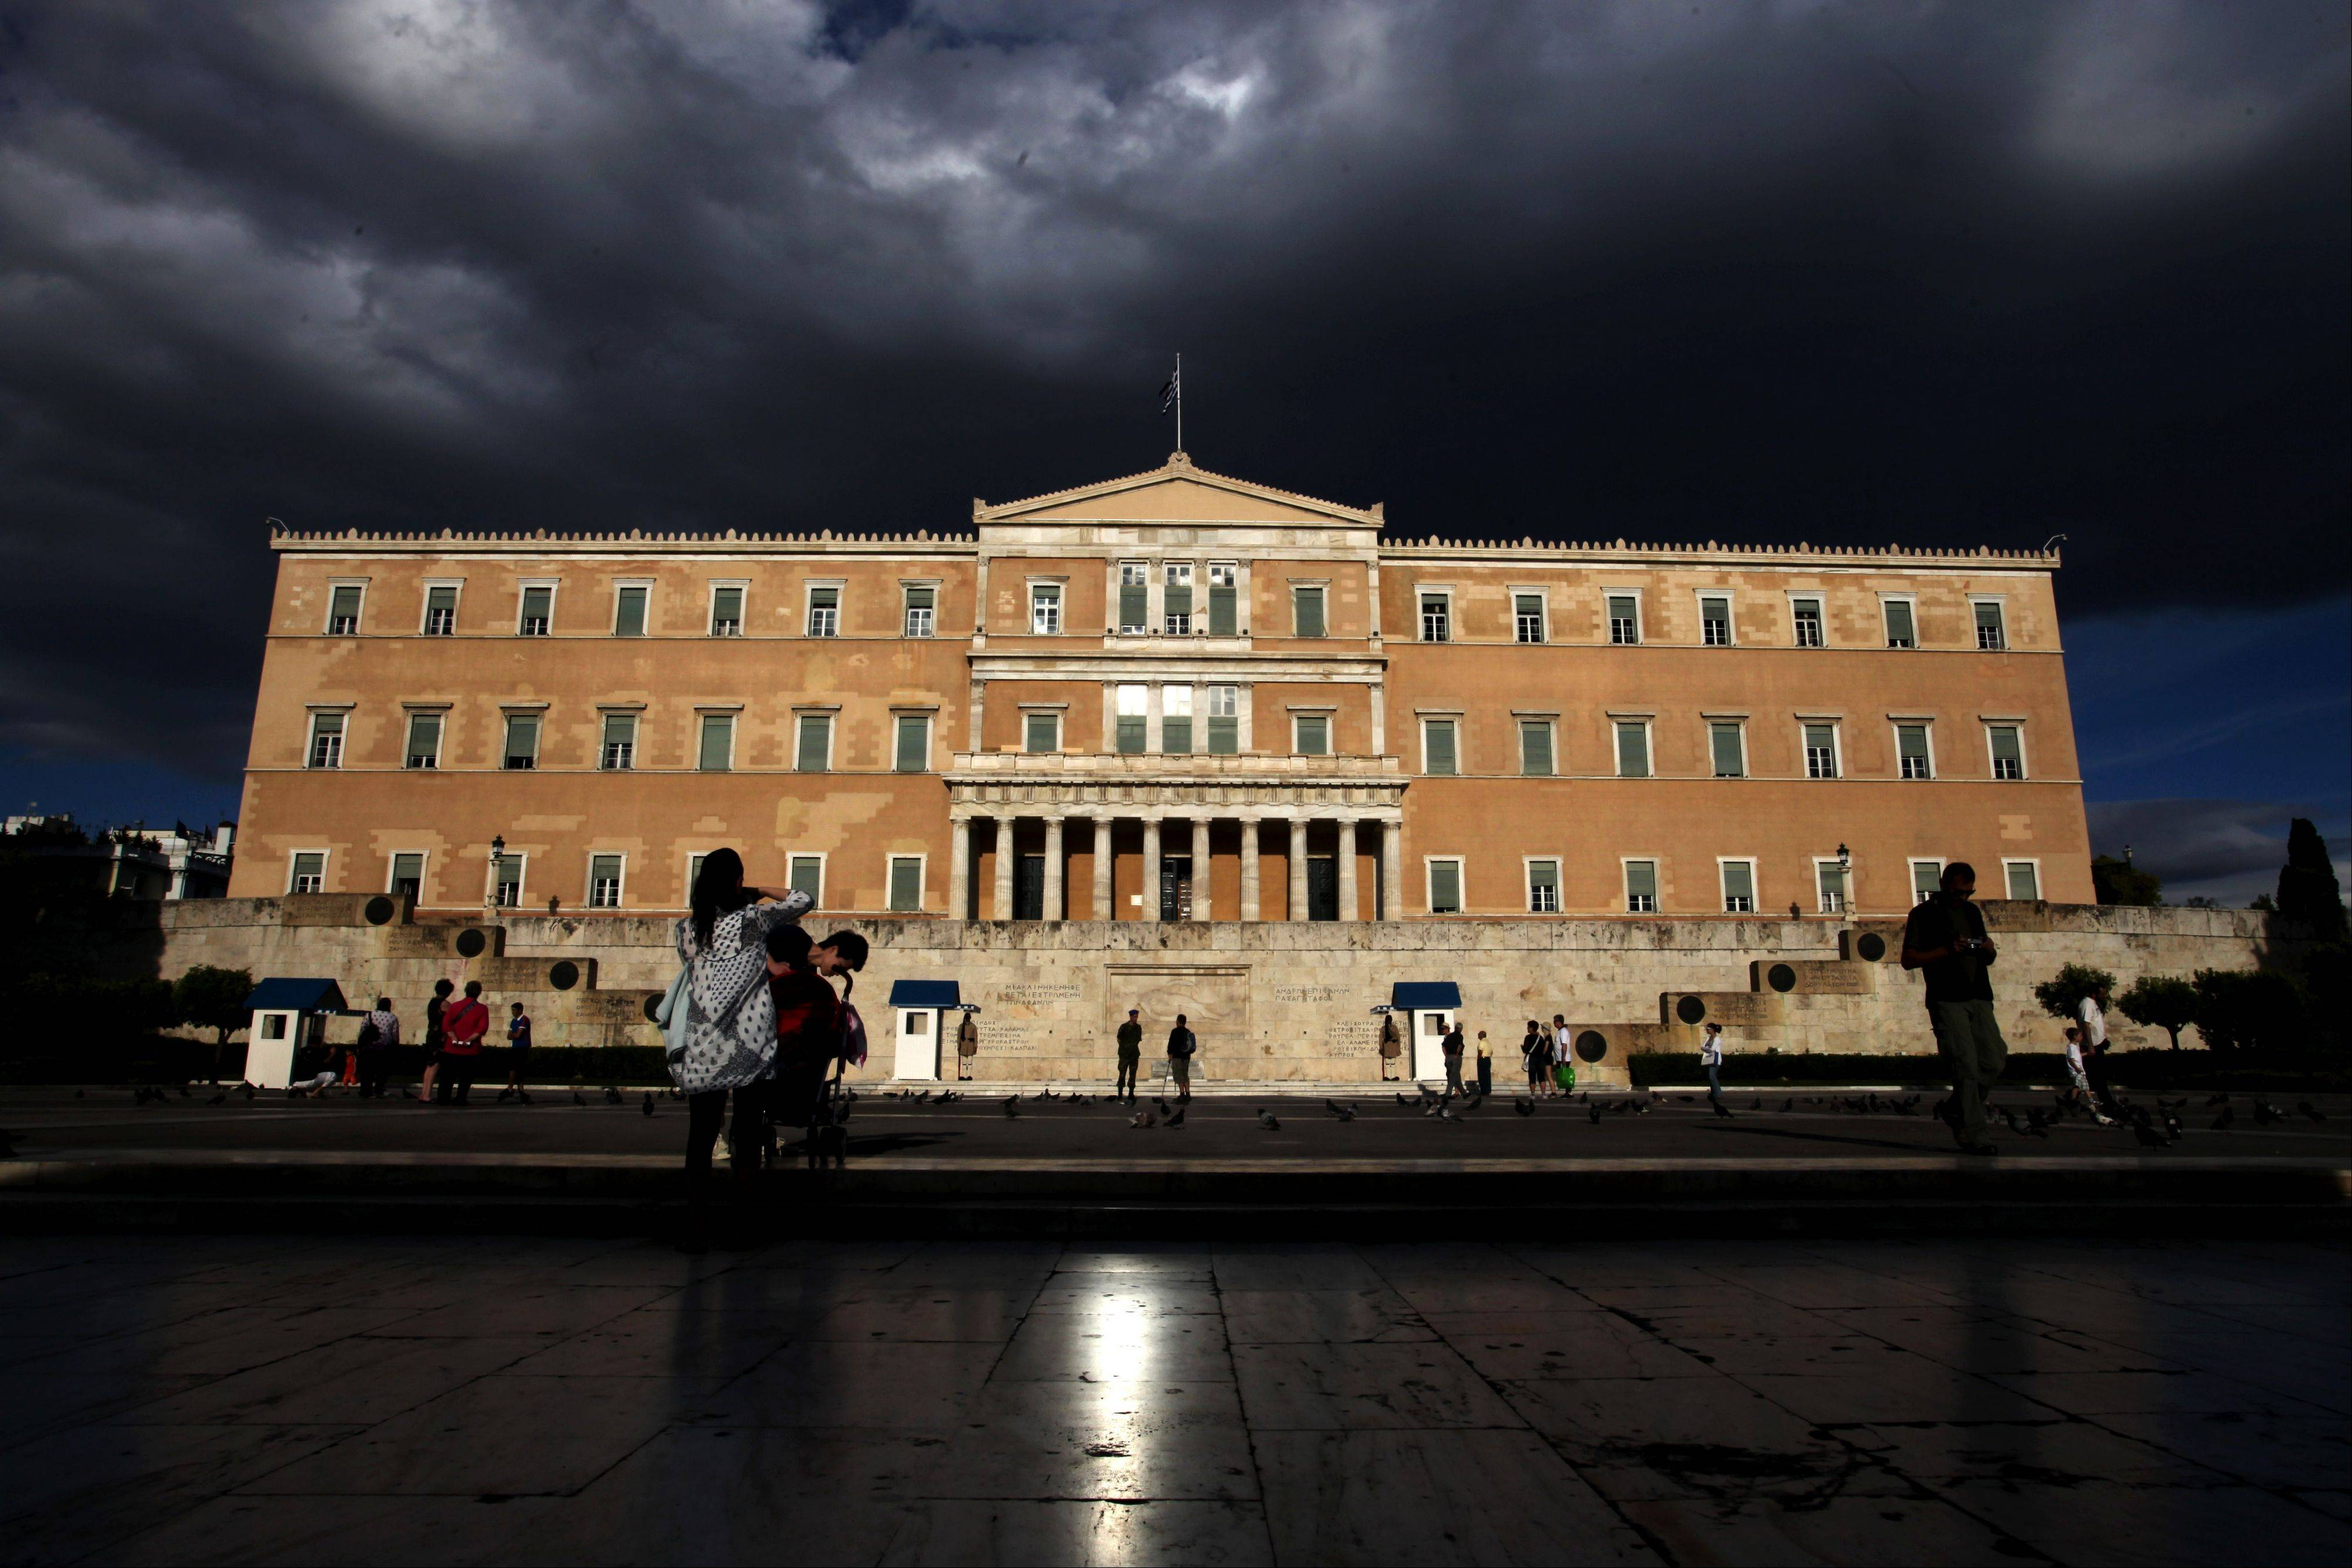 Bankers, governments and investors are starting to prepare for Greece to drop the euro currency, a move that could spread turmoil throughout the global financial system. A Greek election on Sunday, June 12, 2012, will go a long way toward determining whether it happens.